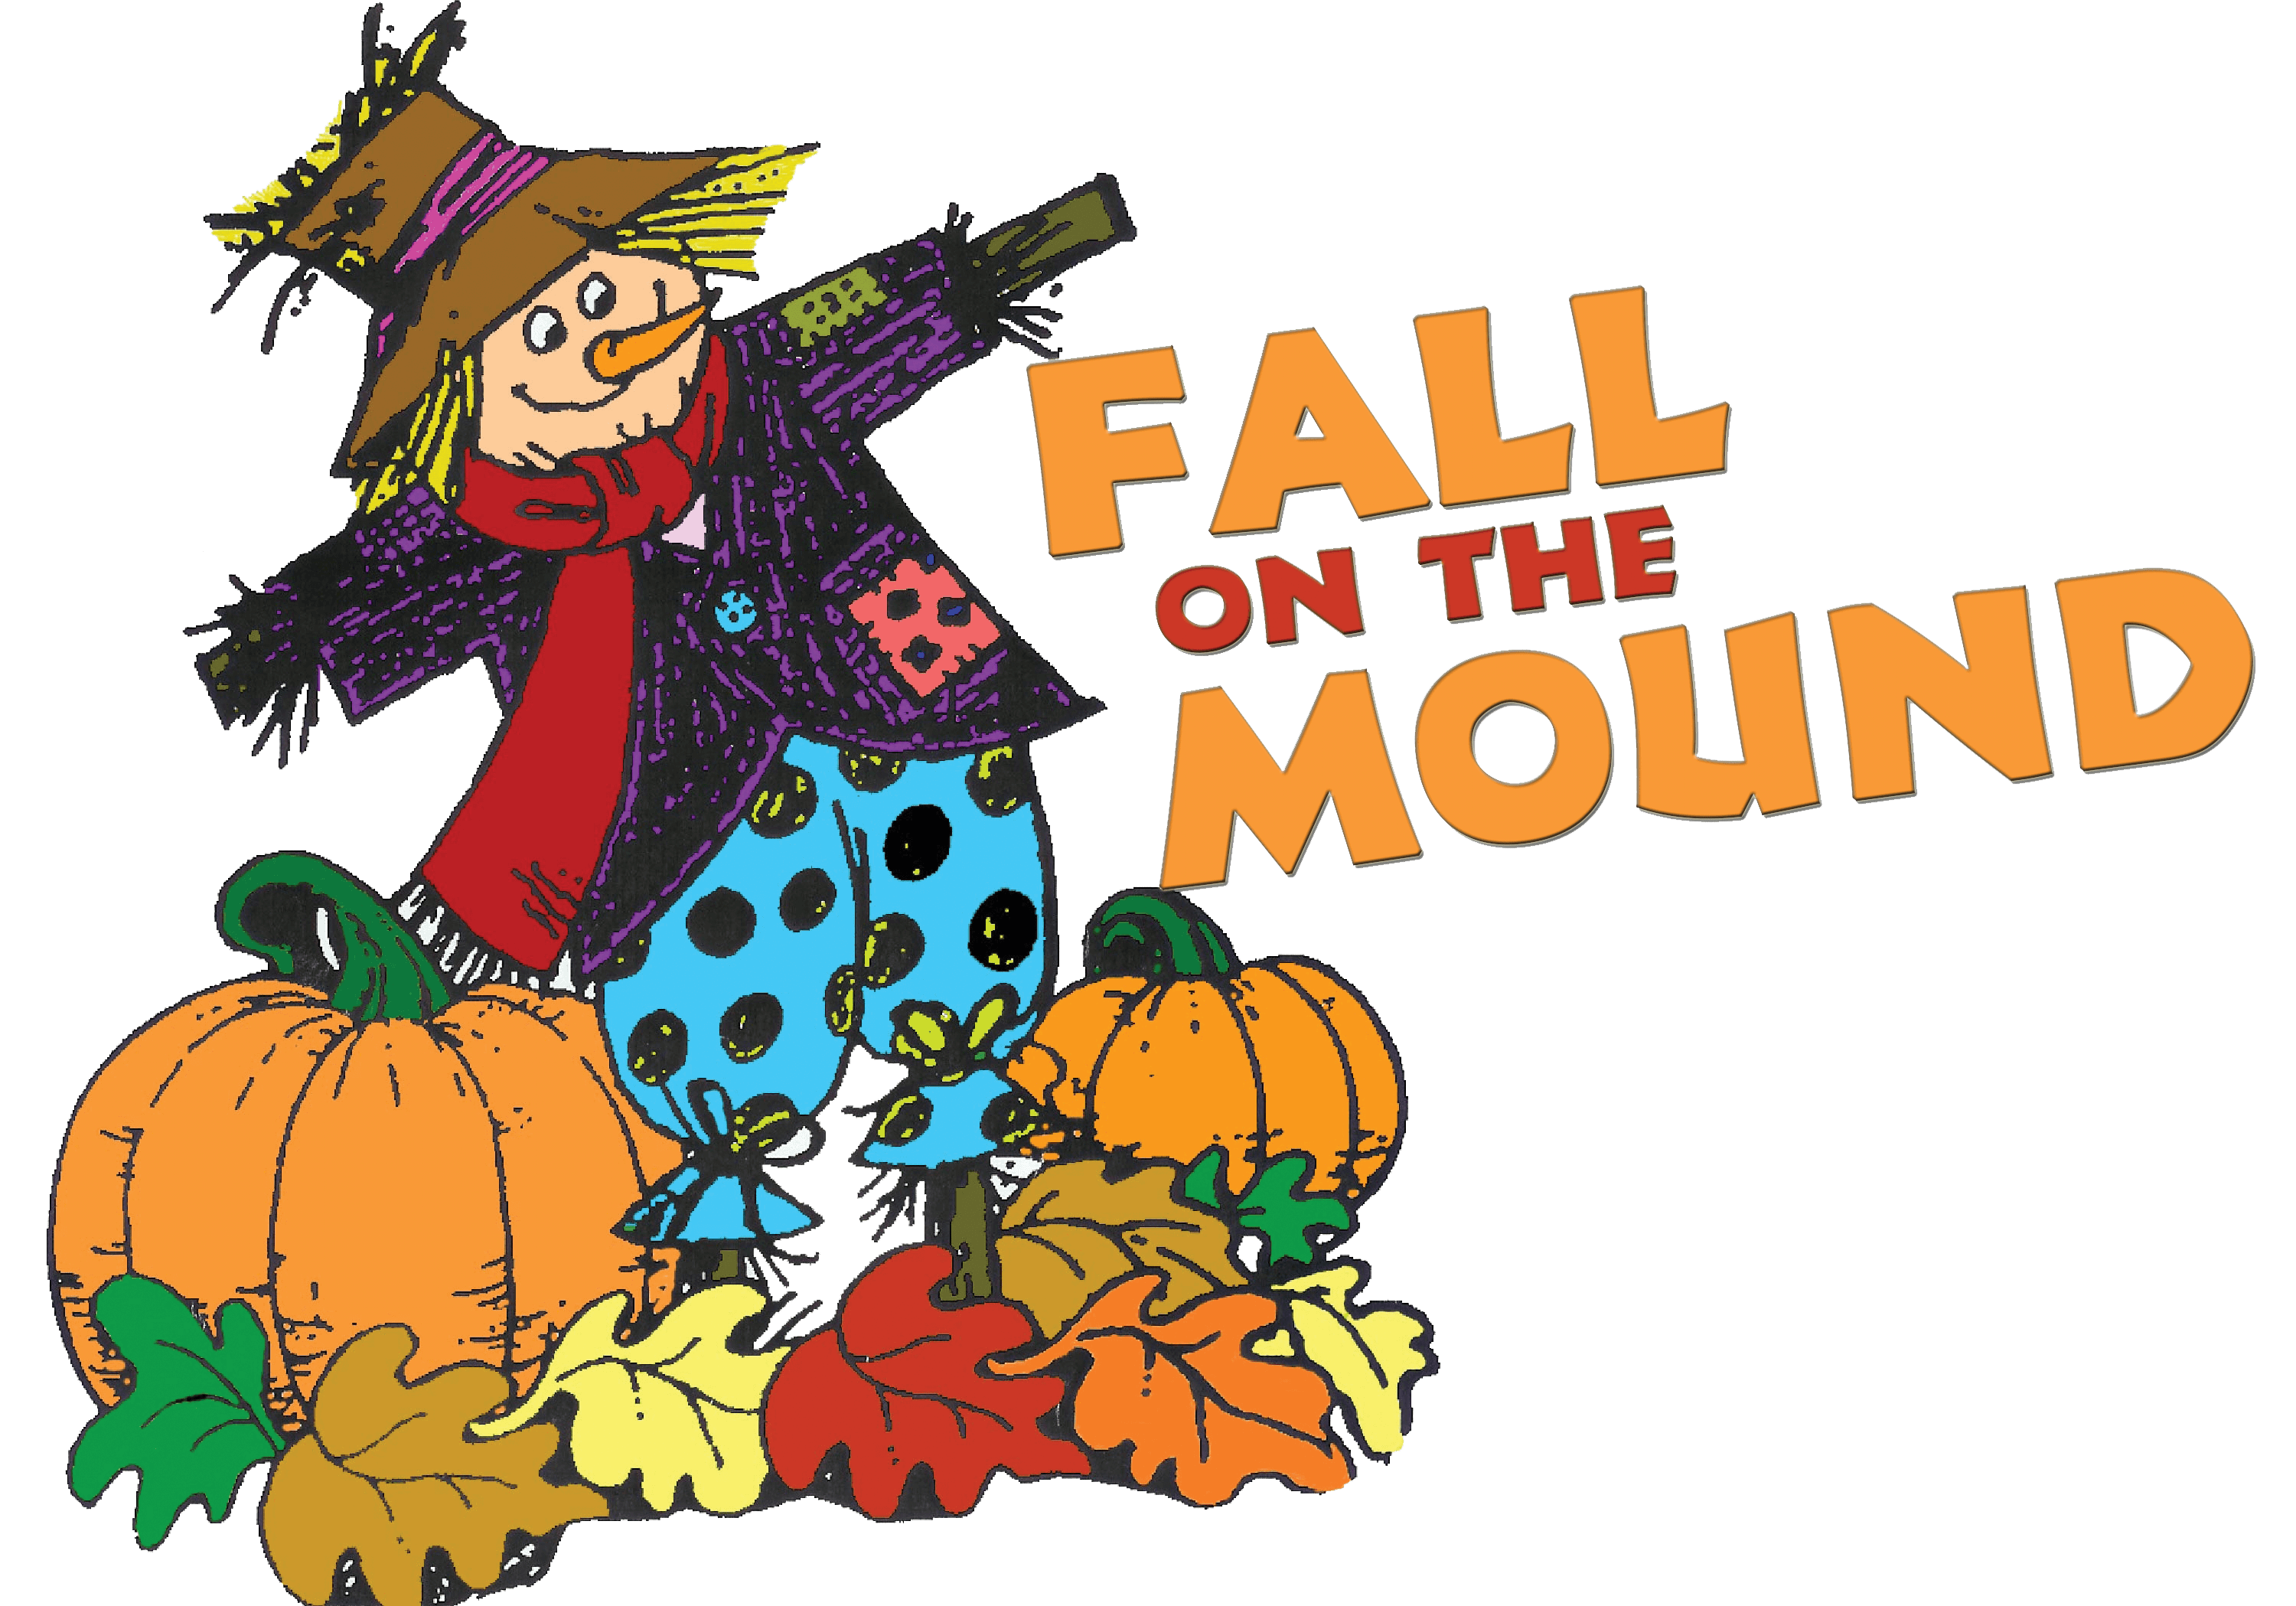 September clipart early fall. On the mound craft